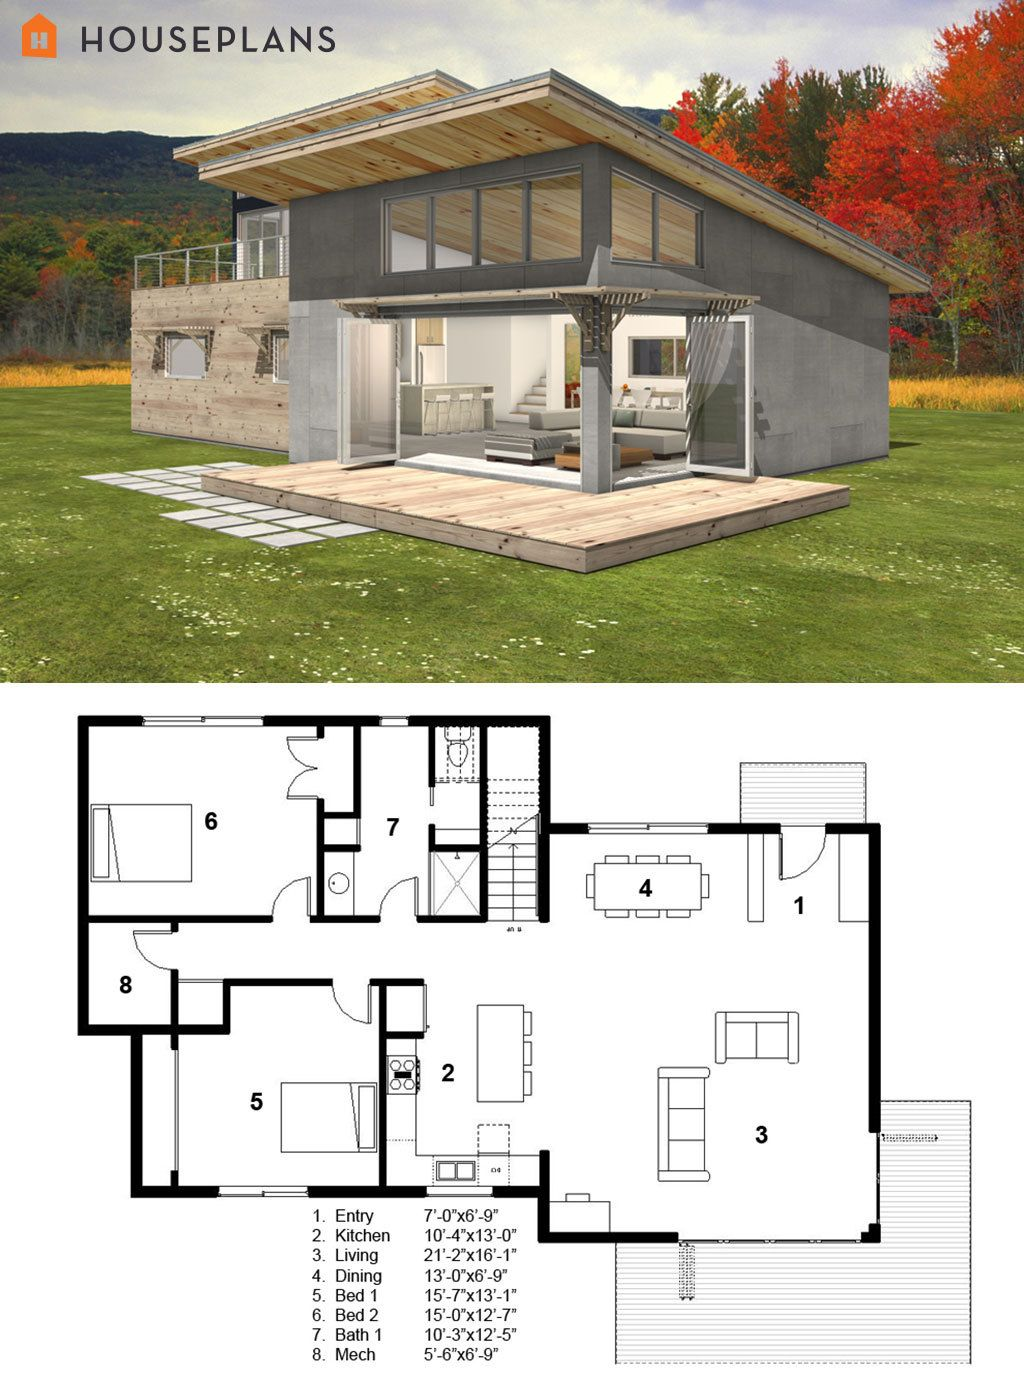 Small modern cabin house plan by freegreen energy for Modern container home designs